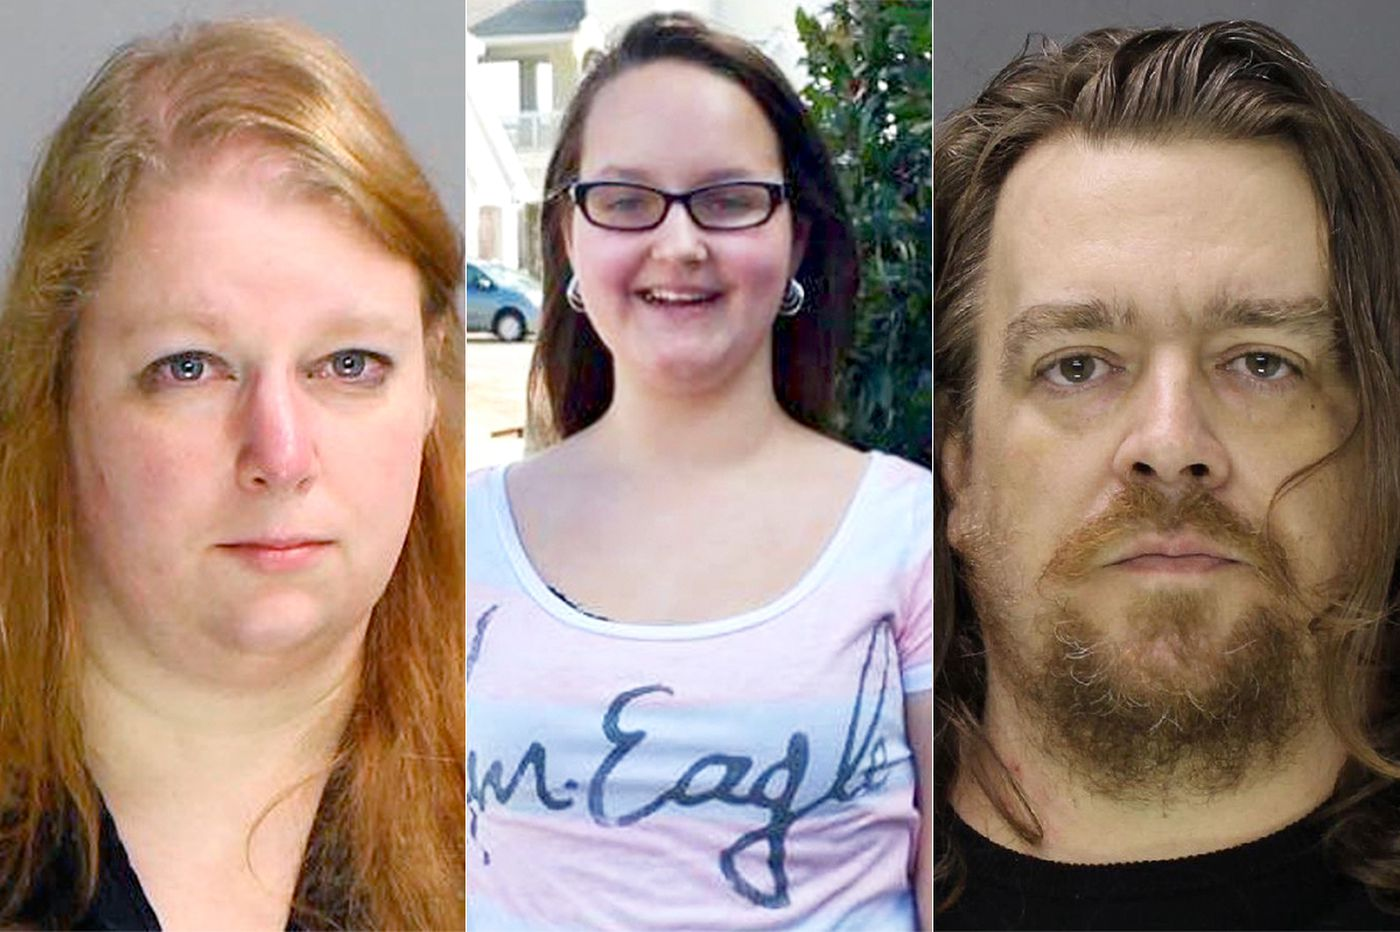 Accused killer Sara Packer wanted adoptions job to 'benefit my fellow human,' records show